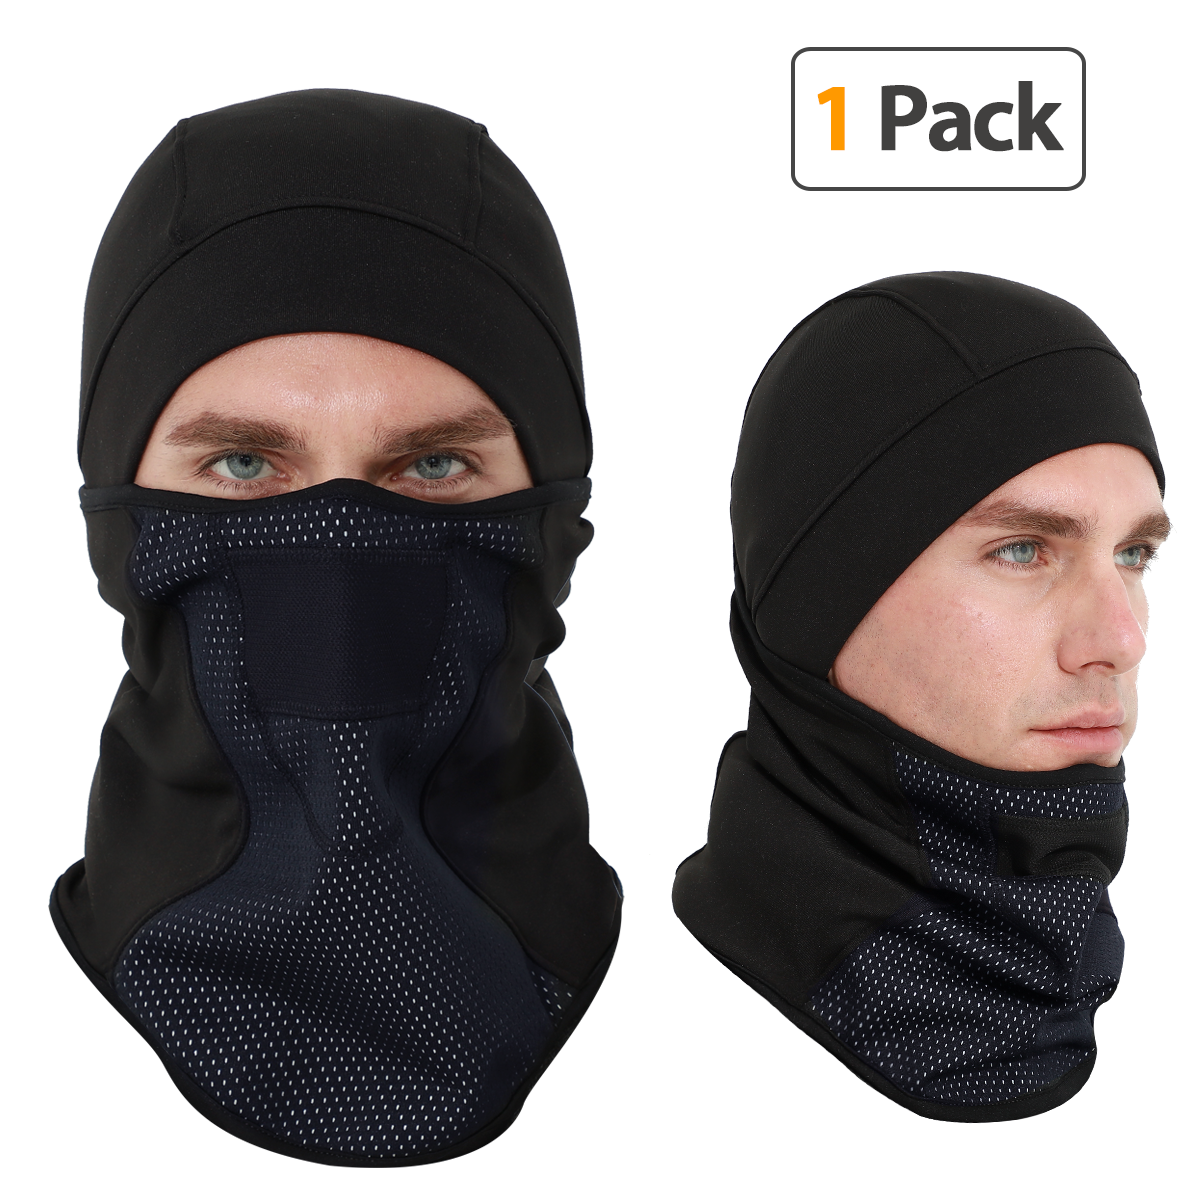 SHINYMOD Balaclava - Windproof Ski Mask Winter Cold Weather Face Motorcycle Mask Snowboard Cycling Hat Hunting Tactical Hood Neck Warmer Cover Hood Polyester Fleece for Men Women